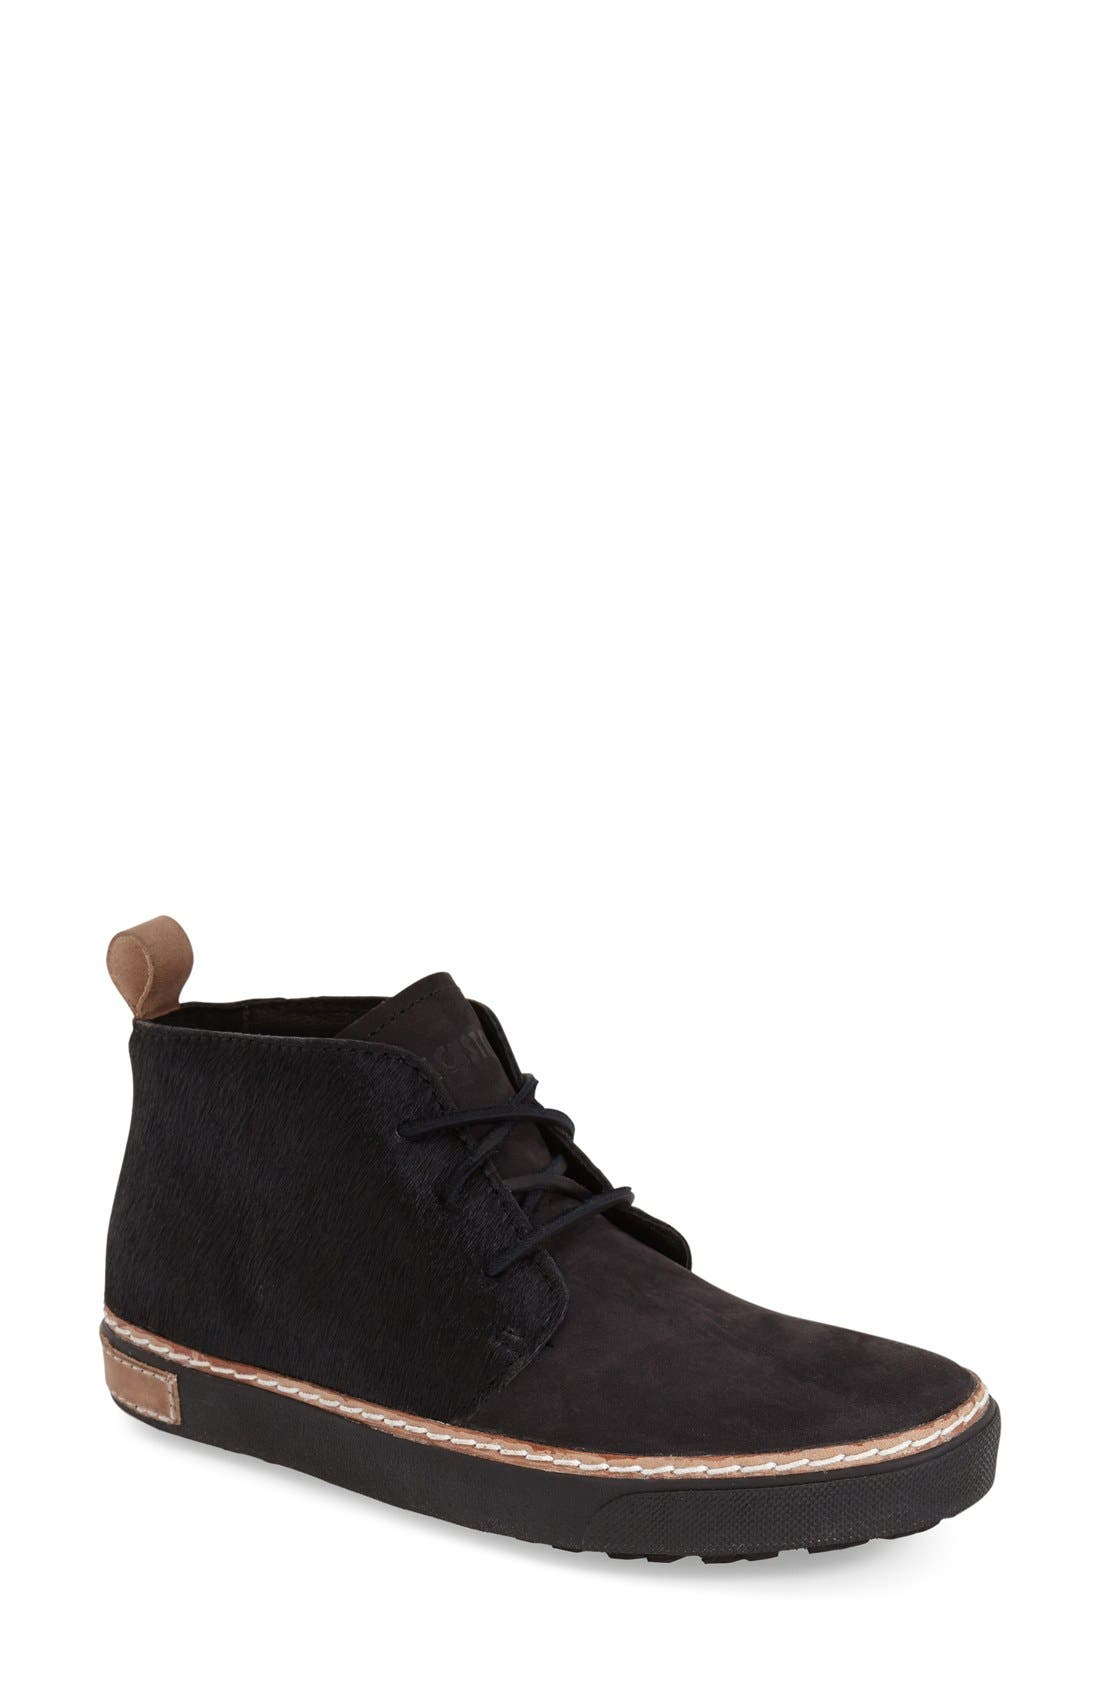 BLACKSTONE Genuine Calf Hair Chukka Sneaker